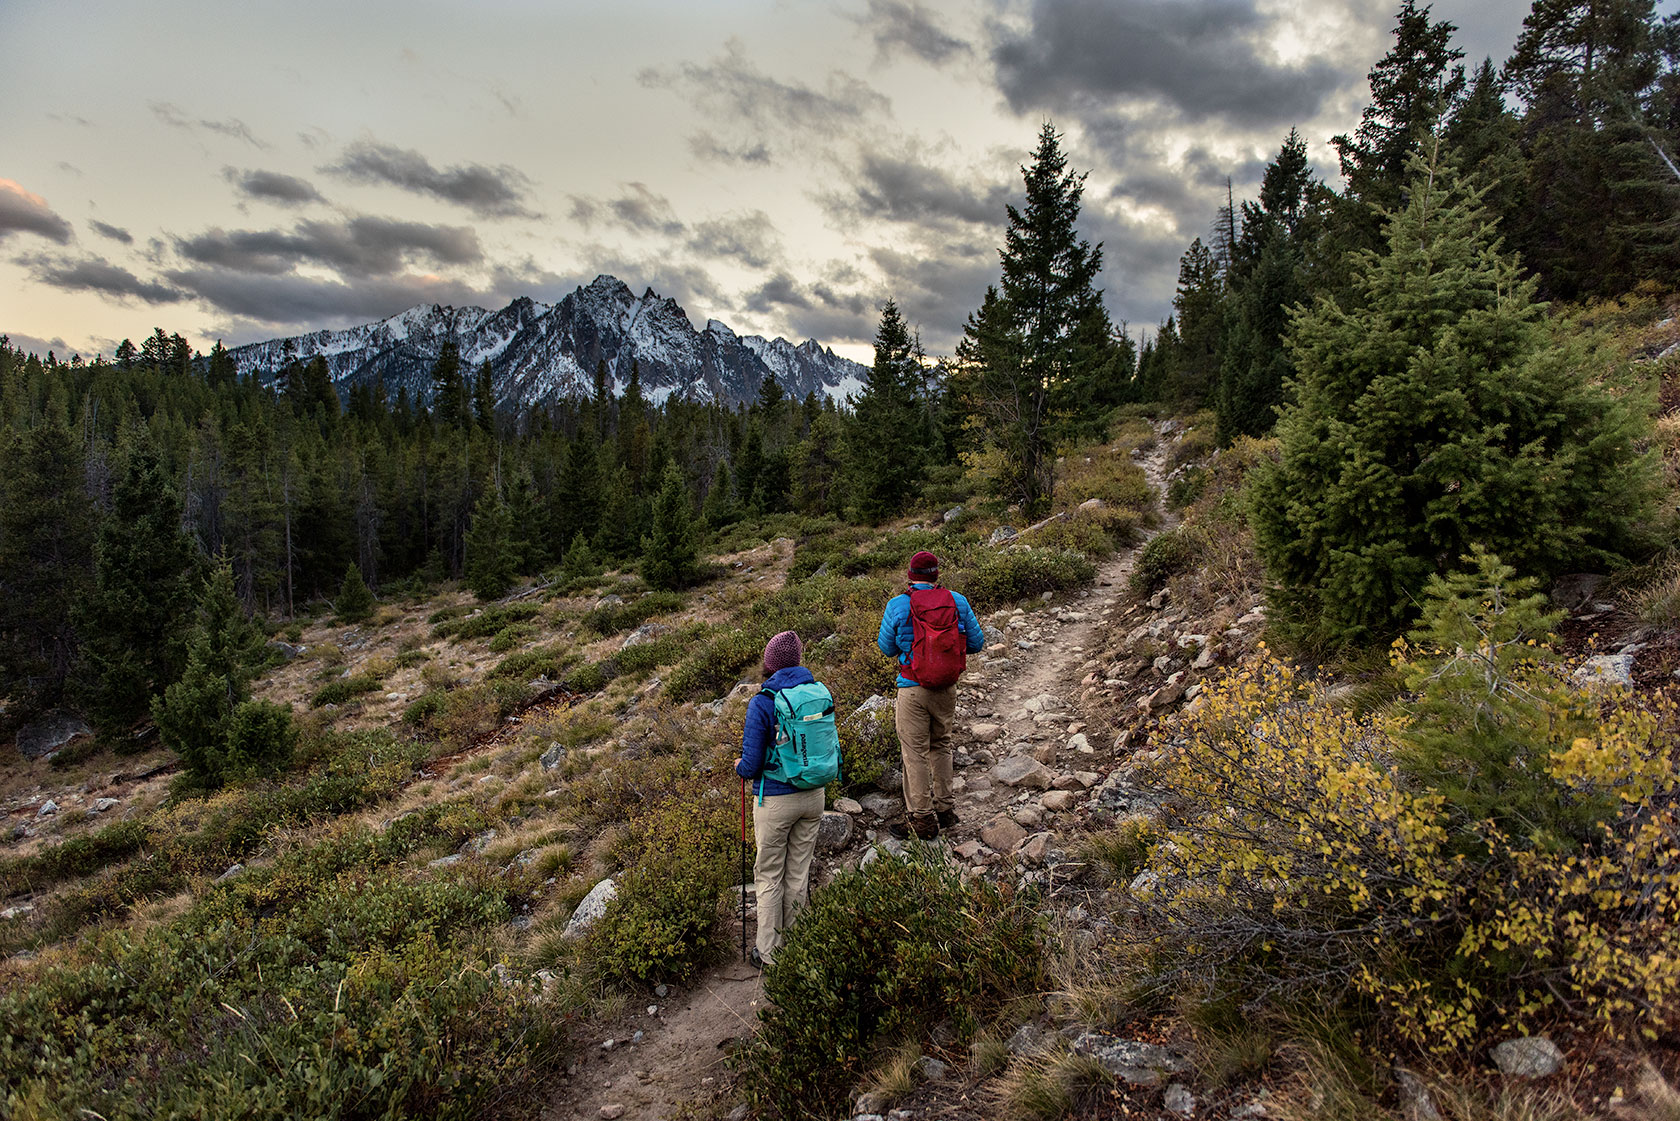 austin-trigg-patagonia-sawtooth-hiking-bench-lakes-sunset-advenure-wilderness-forest-idaho-outside-lifestyle-day-fall-weather-mountains.jpg